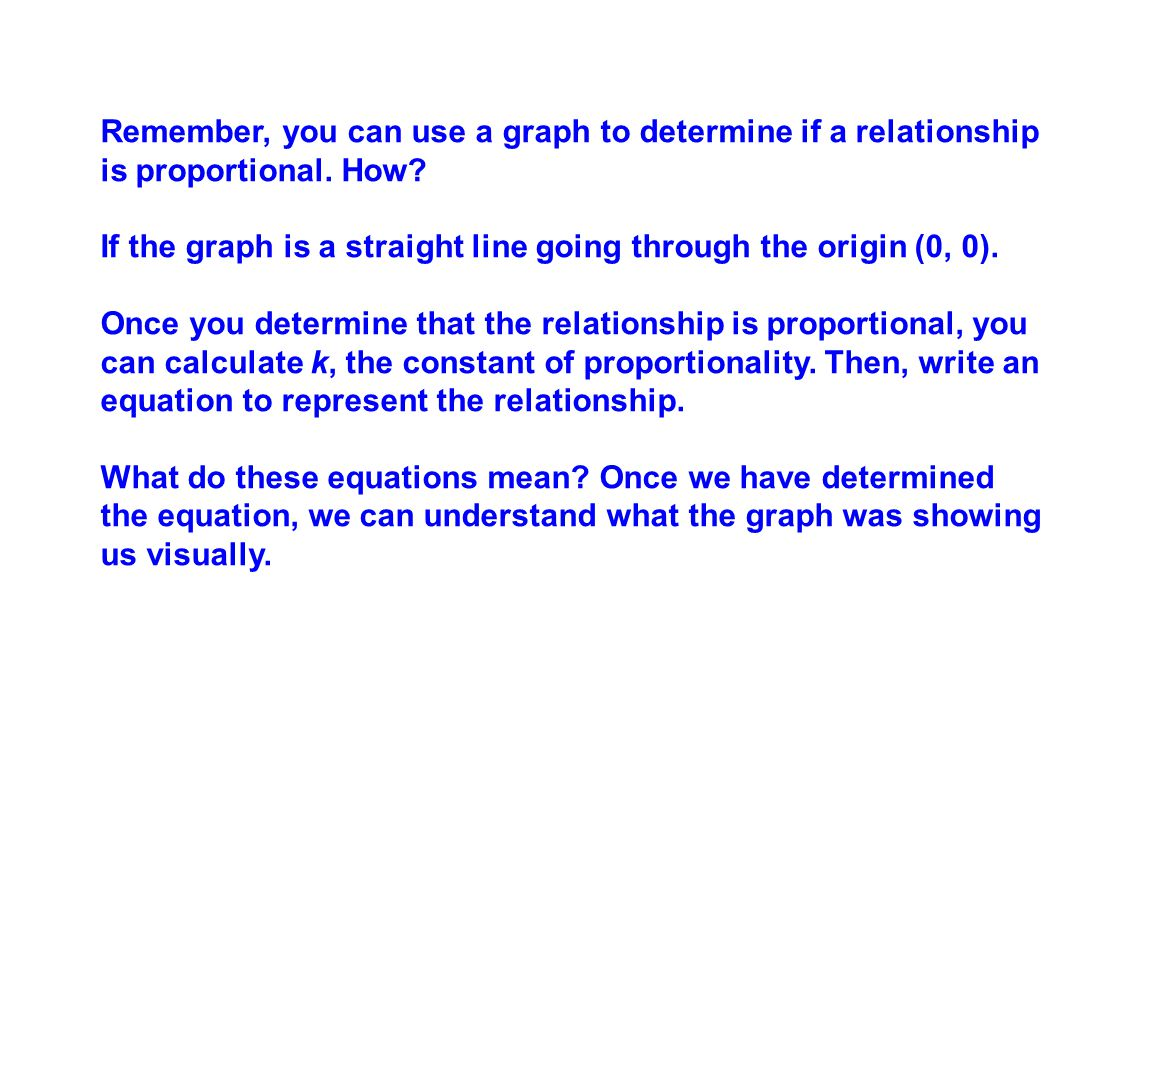 Remember, you can use a graph to determine if a relationship is proportional. How? If the graph is a straight line going through the origin (0, 0). On